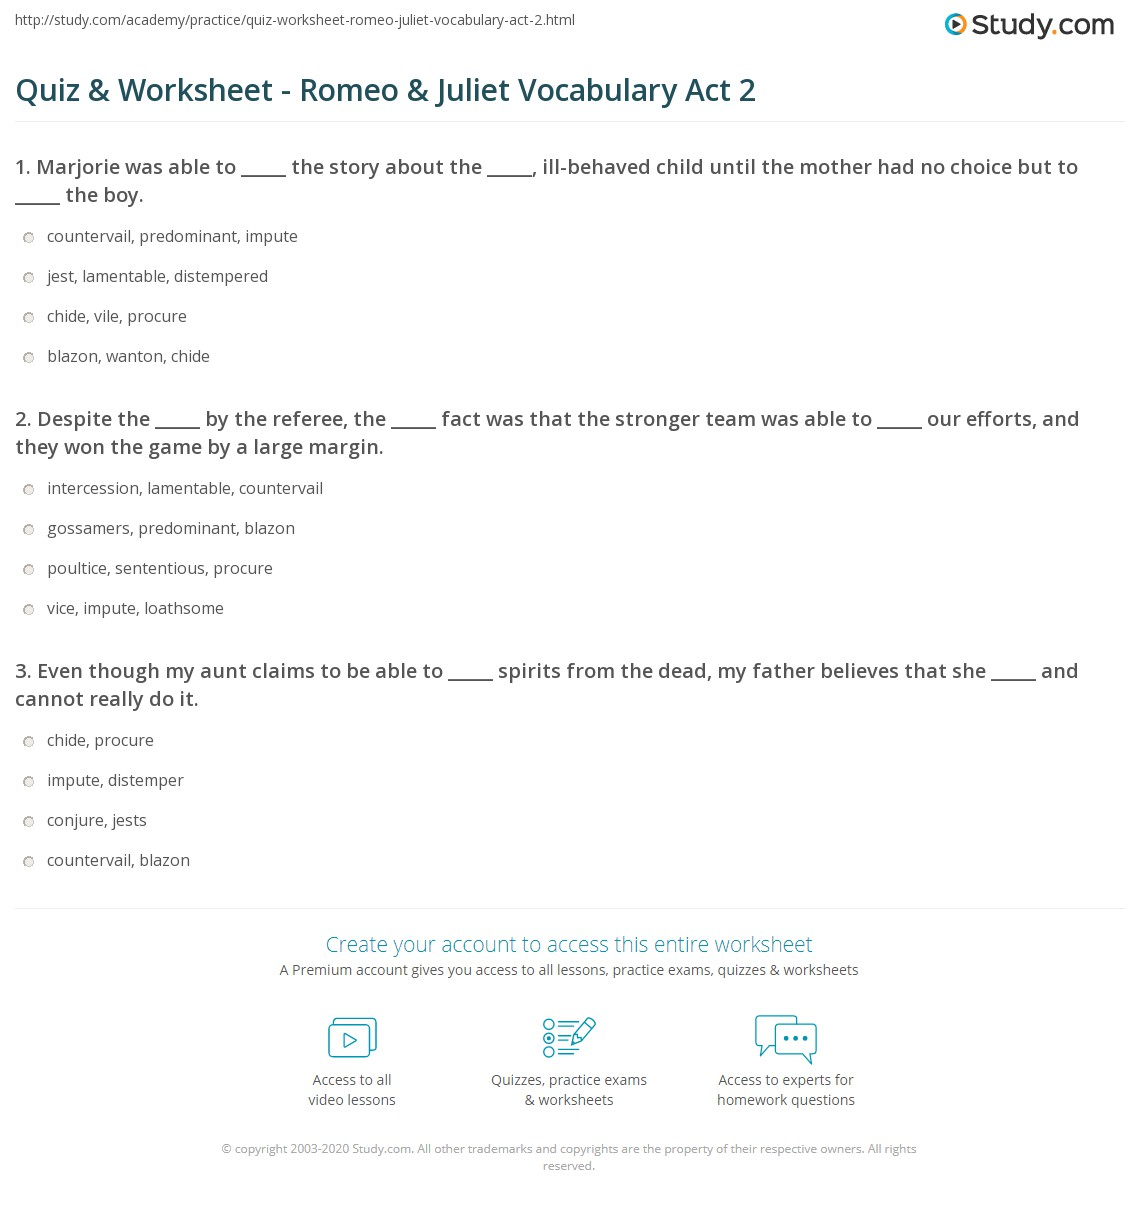 quiz worksheet romeo juliet vocabulary act com print romeo and juliet vocabulary act 2 worksheet